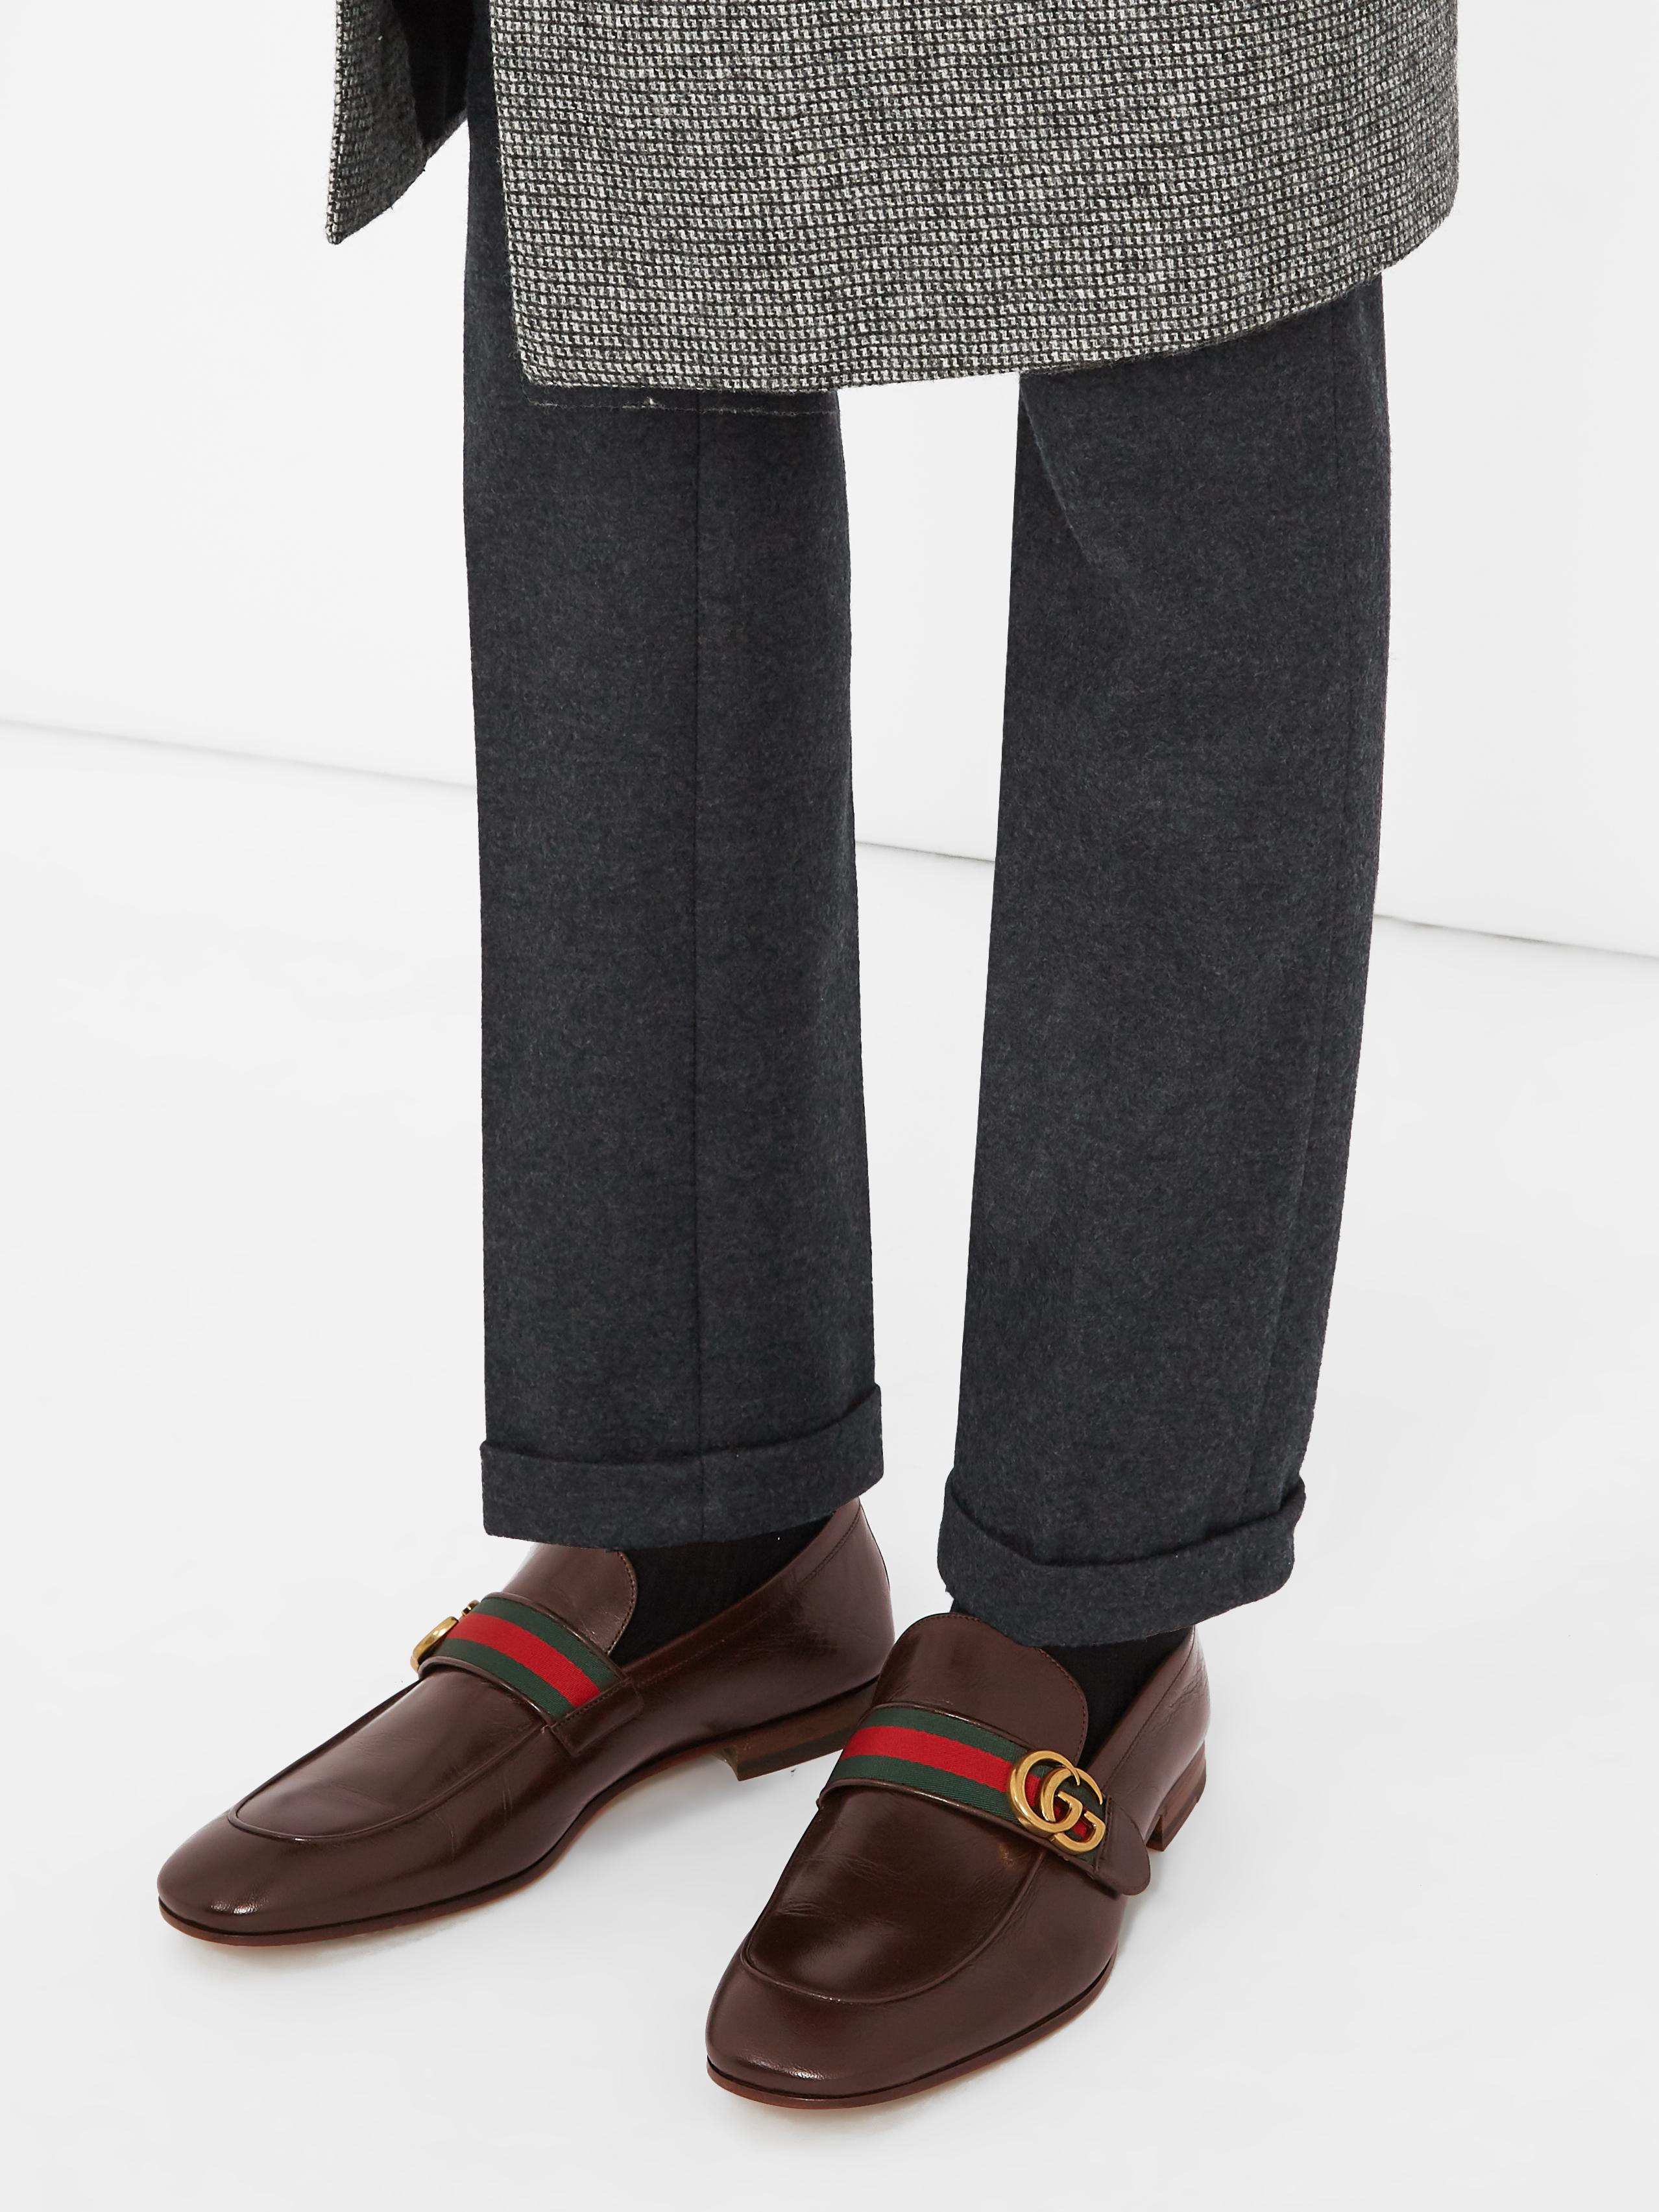 5d3ece43585 Gucci Donnie Gg Leather Loafers in Brown for Men - Lyst